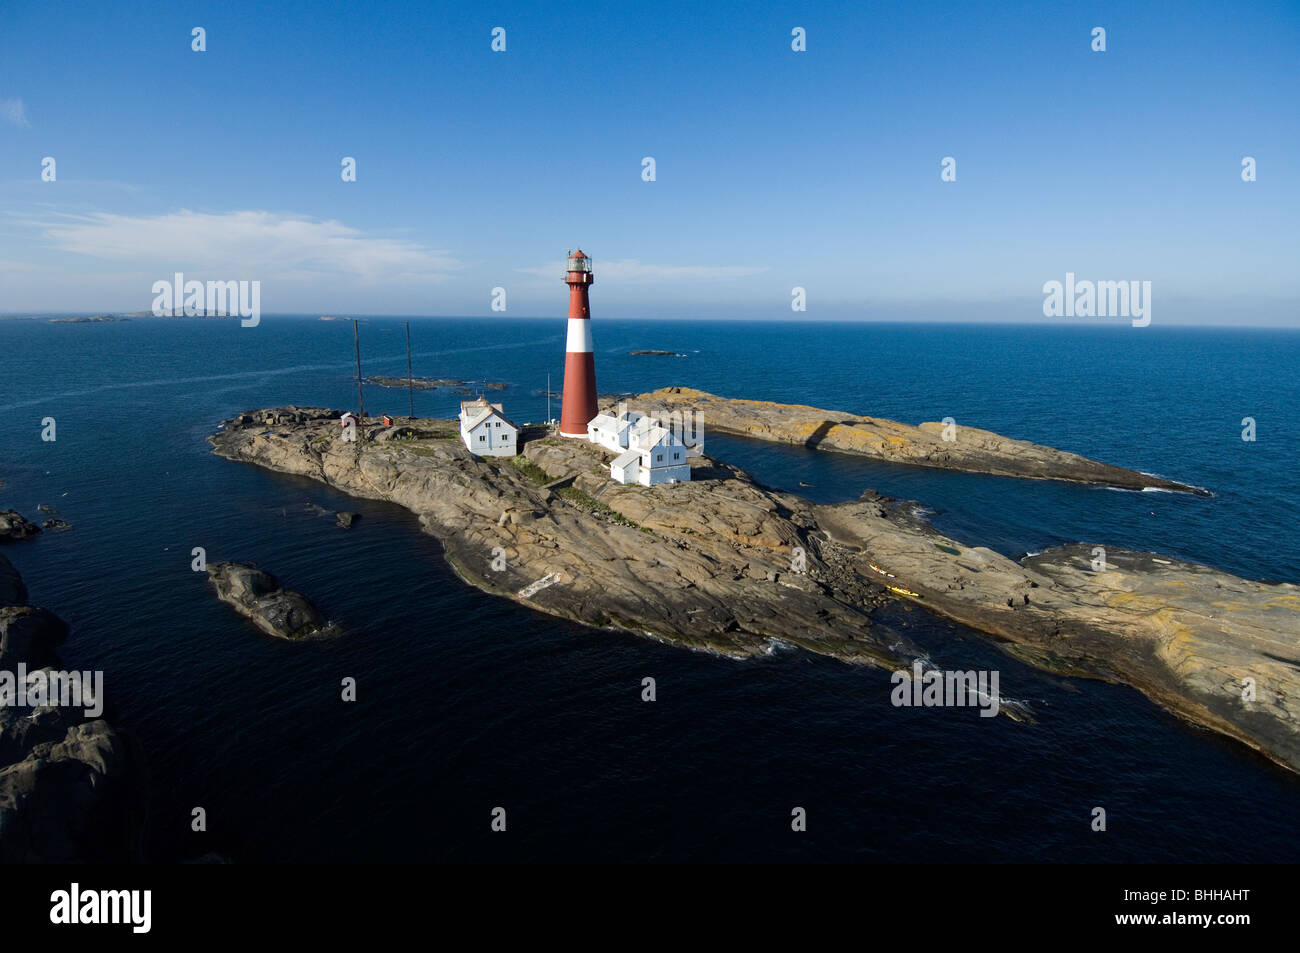 Lighthouse, Faerder, Norway. - Stock Image